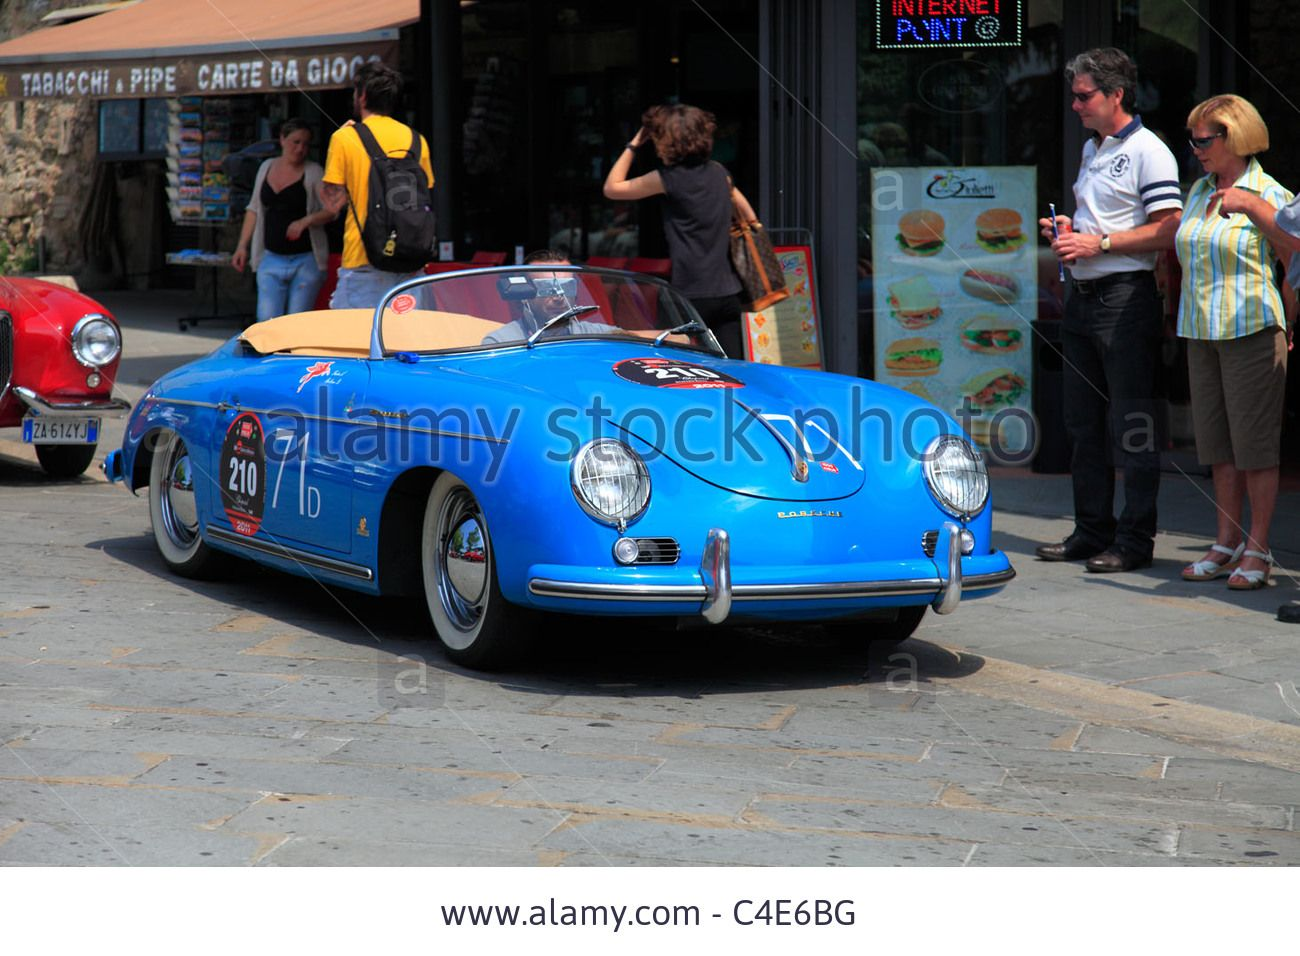 Download this stock image: Mille Miglia 2011, Porsche 356 1500 Speedster 1954 - C4E6BG from Alamy's library of millions of high resolution stock photos, illustrations and vectors.